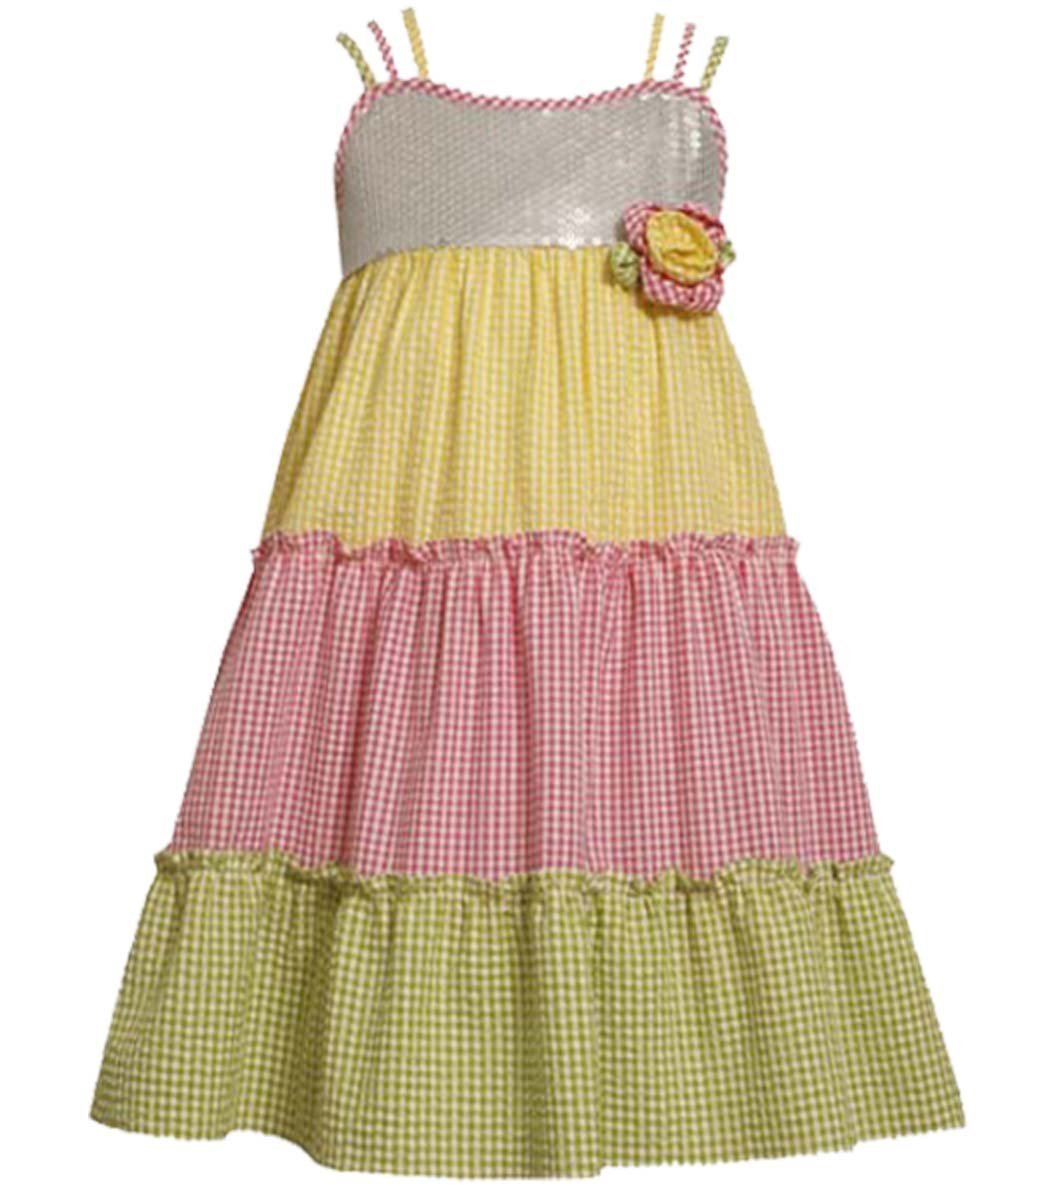 Big Girl Tween 7-16 Trile Strap Sequin Colorblock Tier Dress, Bonnie Jean